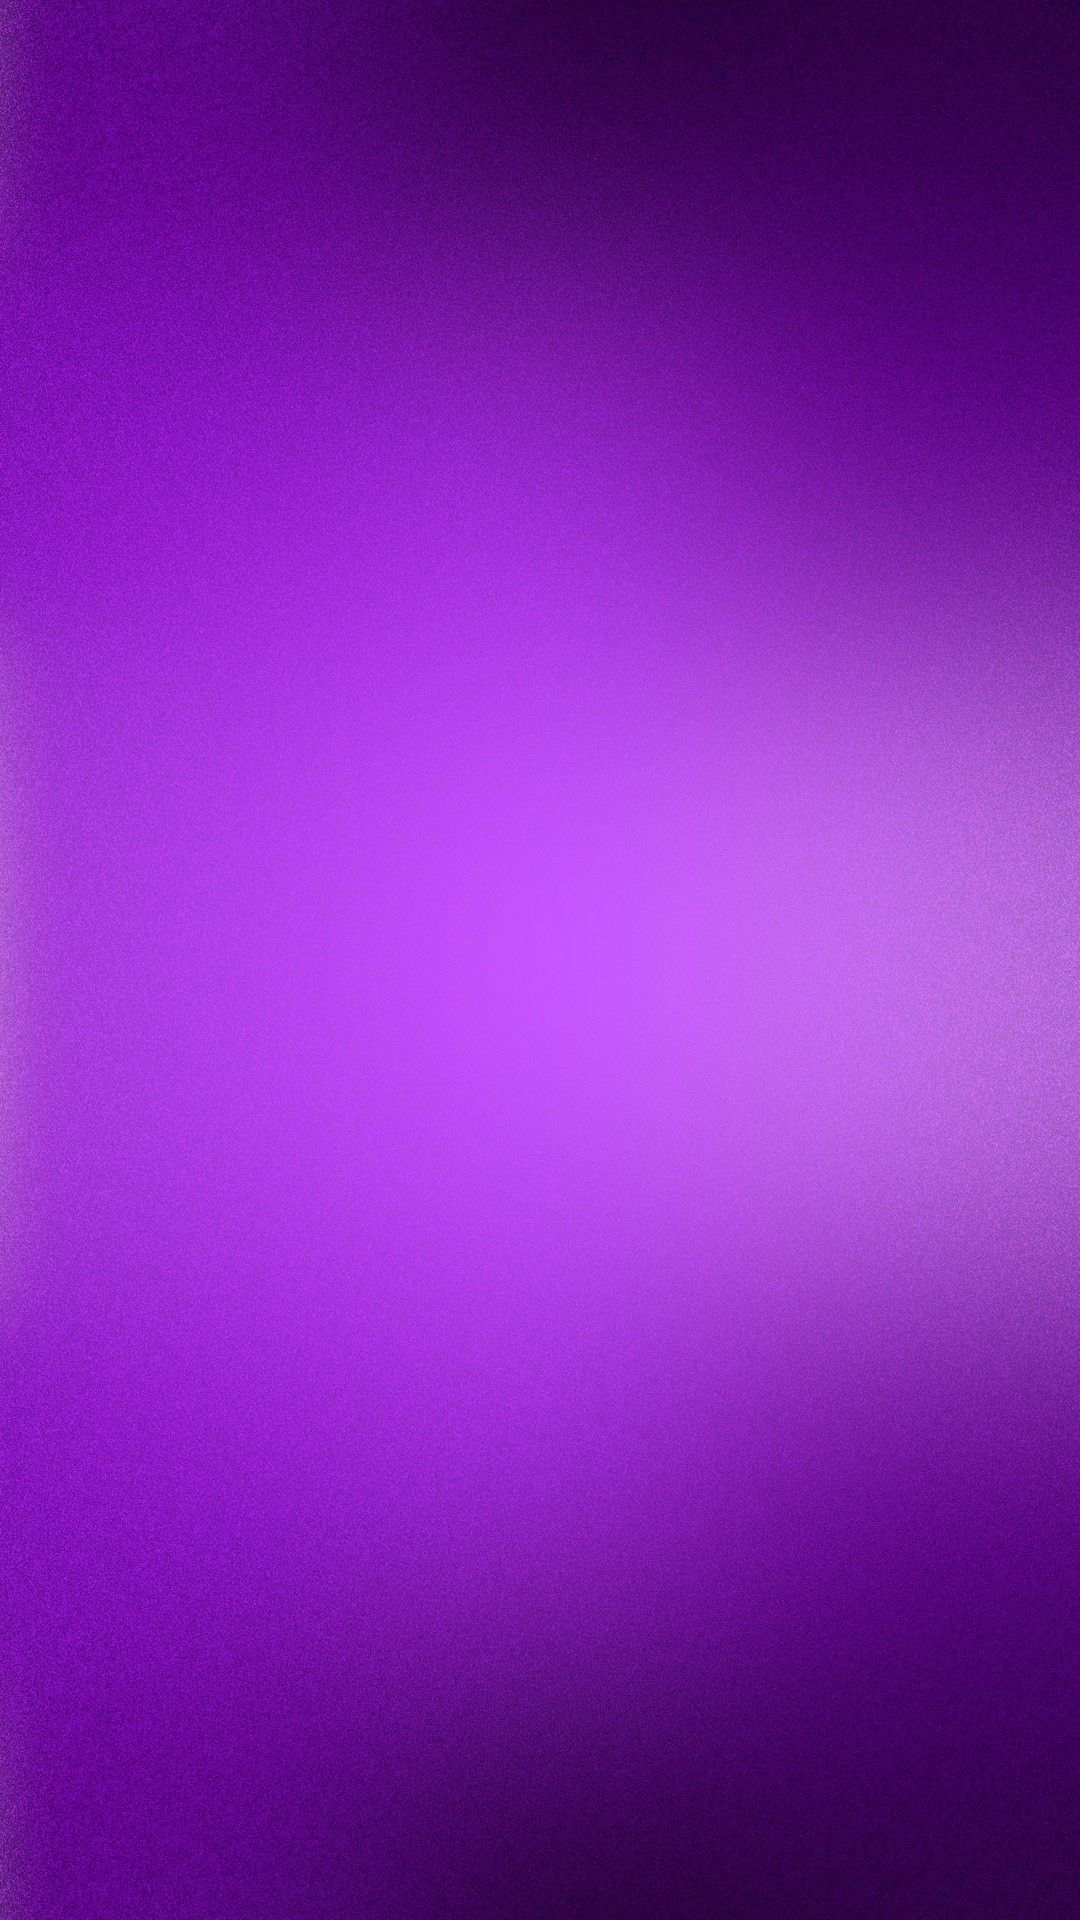 HD Purple iPhone Wallpaper Best iPhone Wallpaper